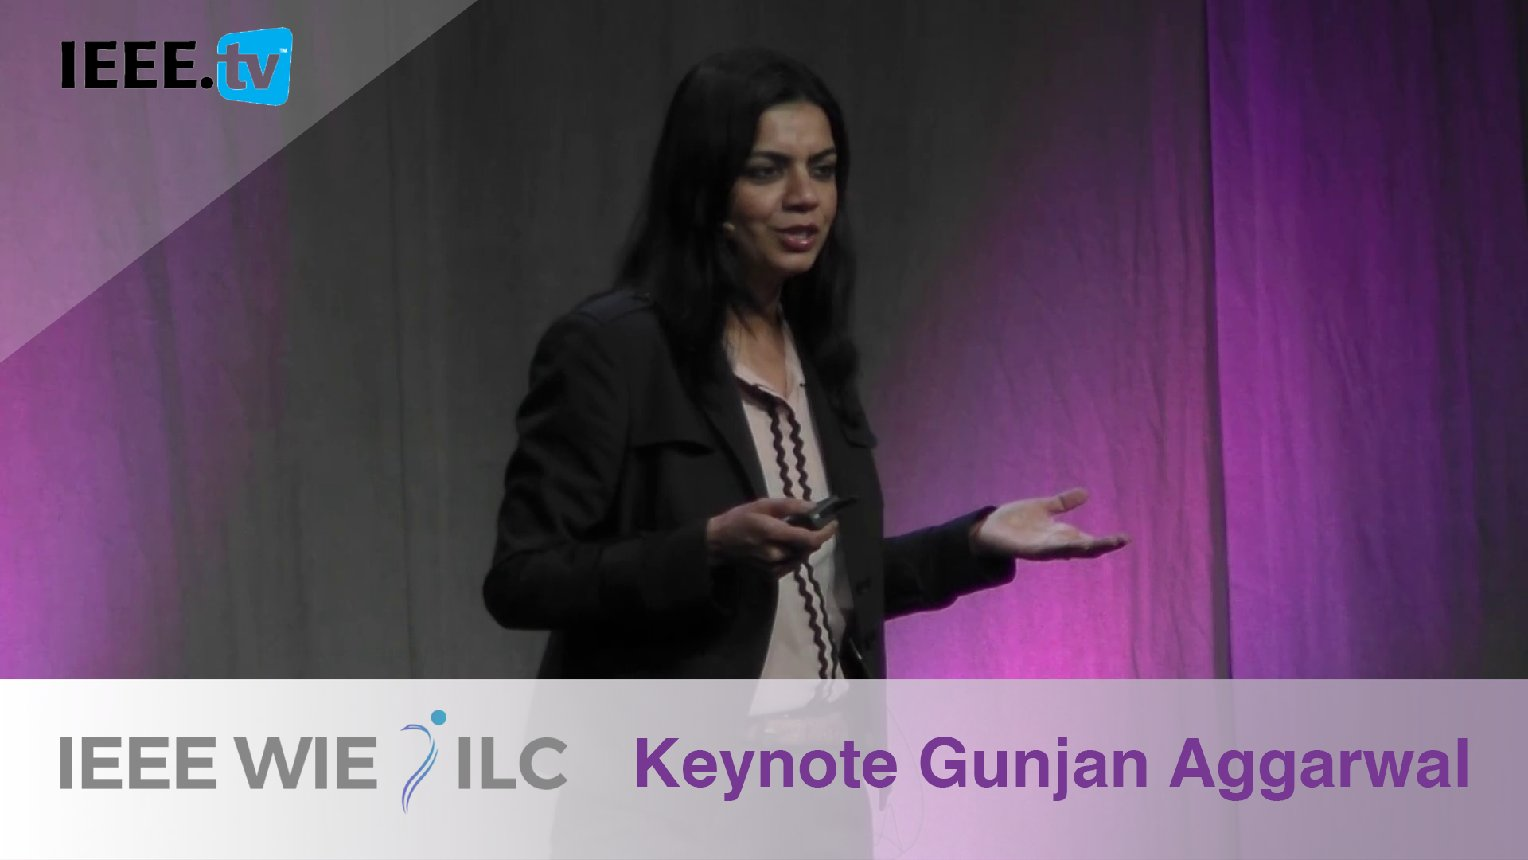 Keynote Gunjan Aggarwal on Tech Secrets to a Successful Conference - IEEE WIE ILC 2017